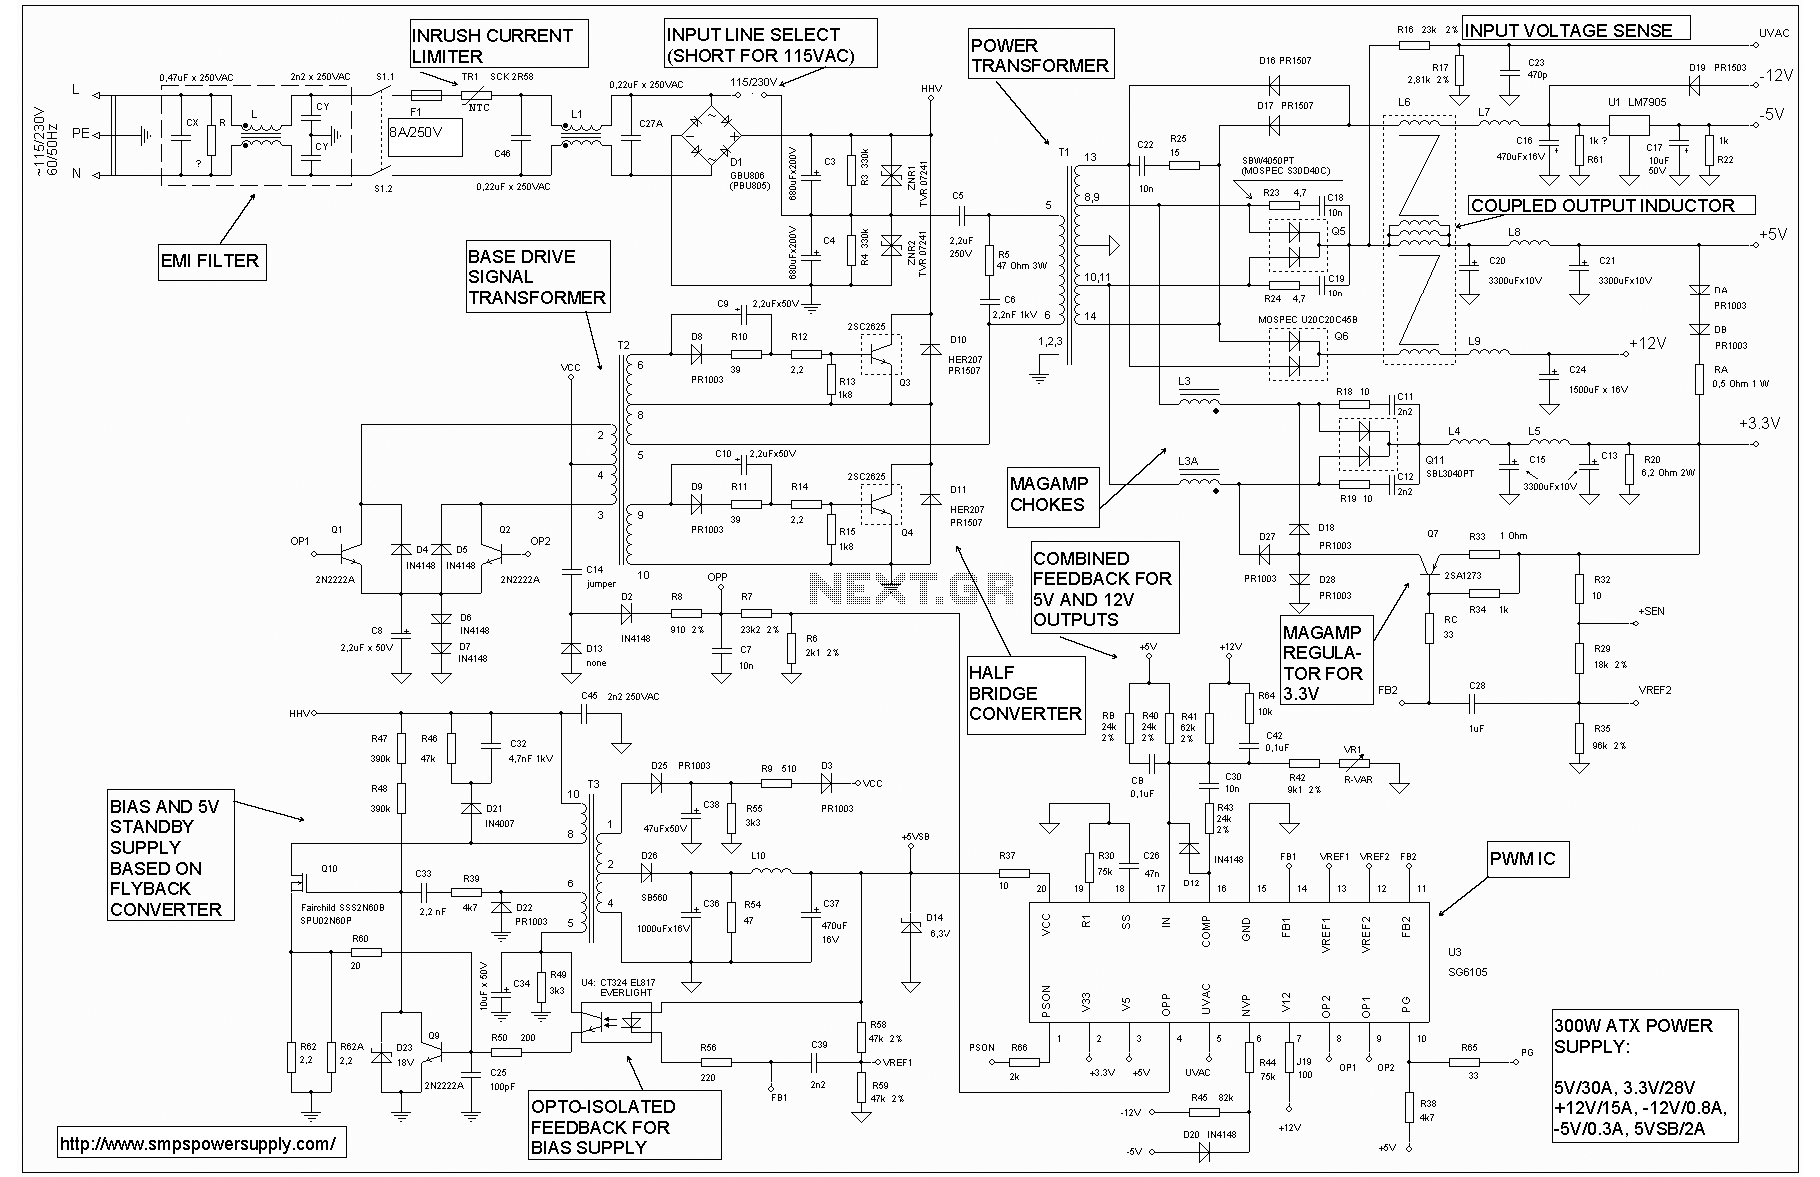 Computer power supply atx pinouts schematics reviews